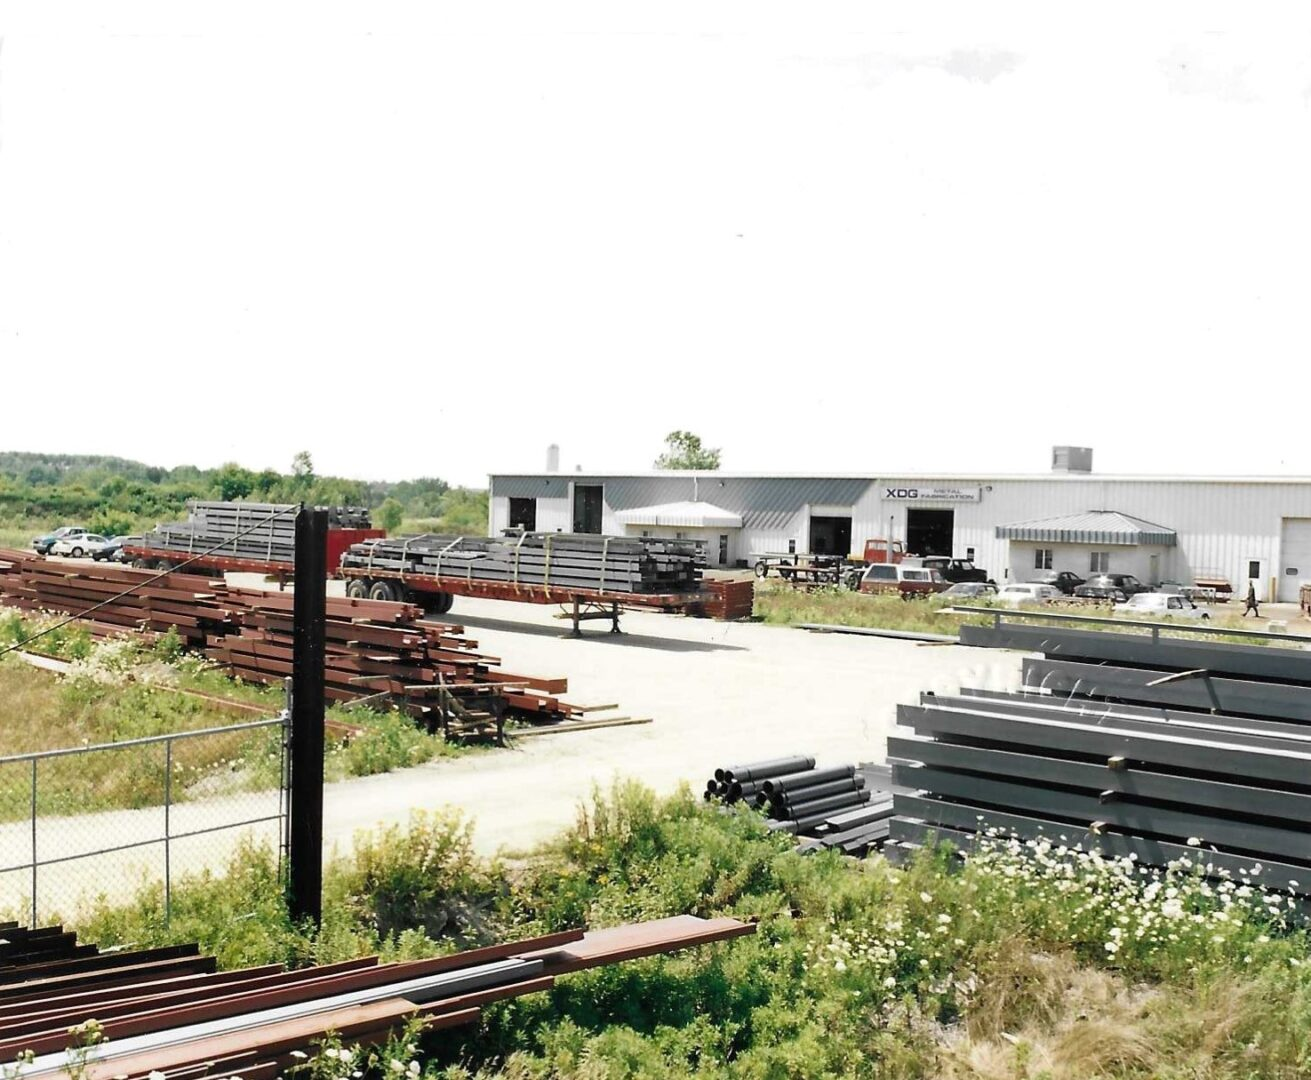 A facility with stacks of steel outside